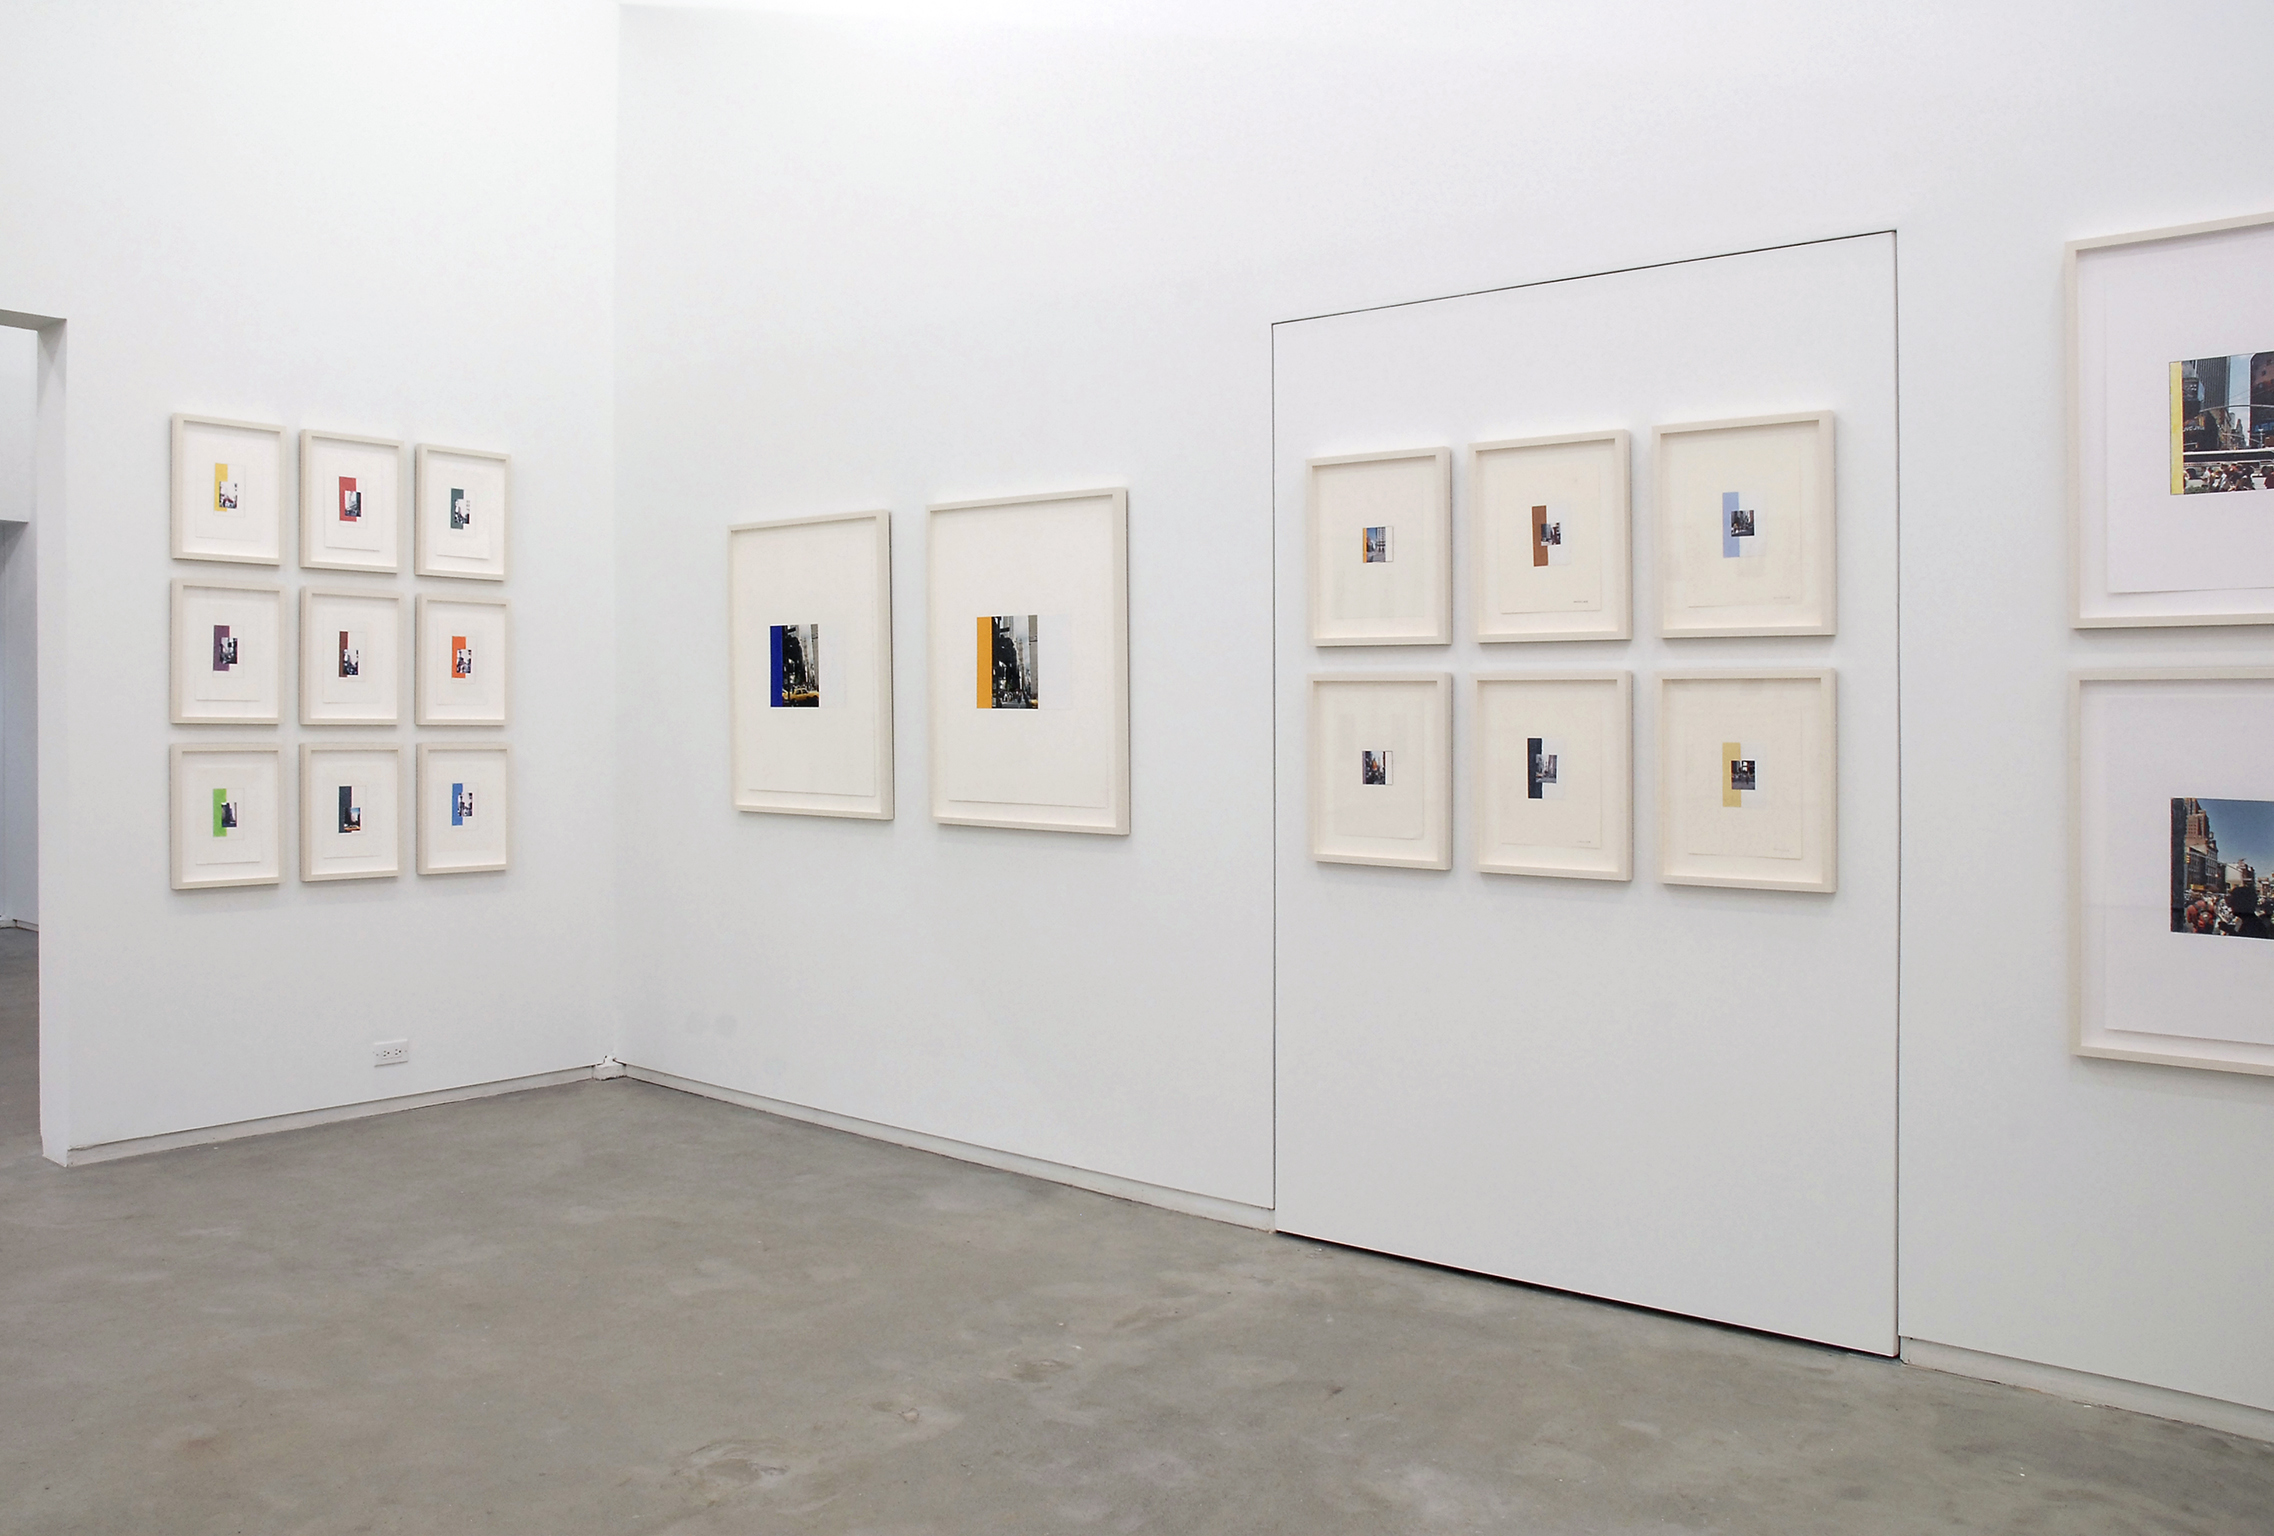 Ian Wallace, installation view, Process as Work, Catriona Jeffries, 2008 by